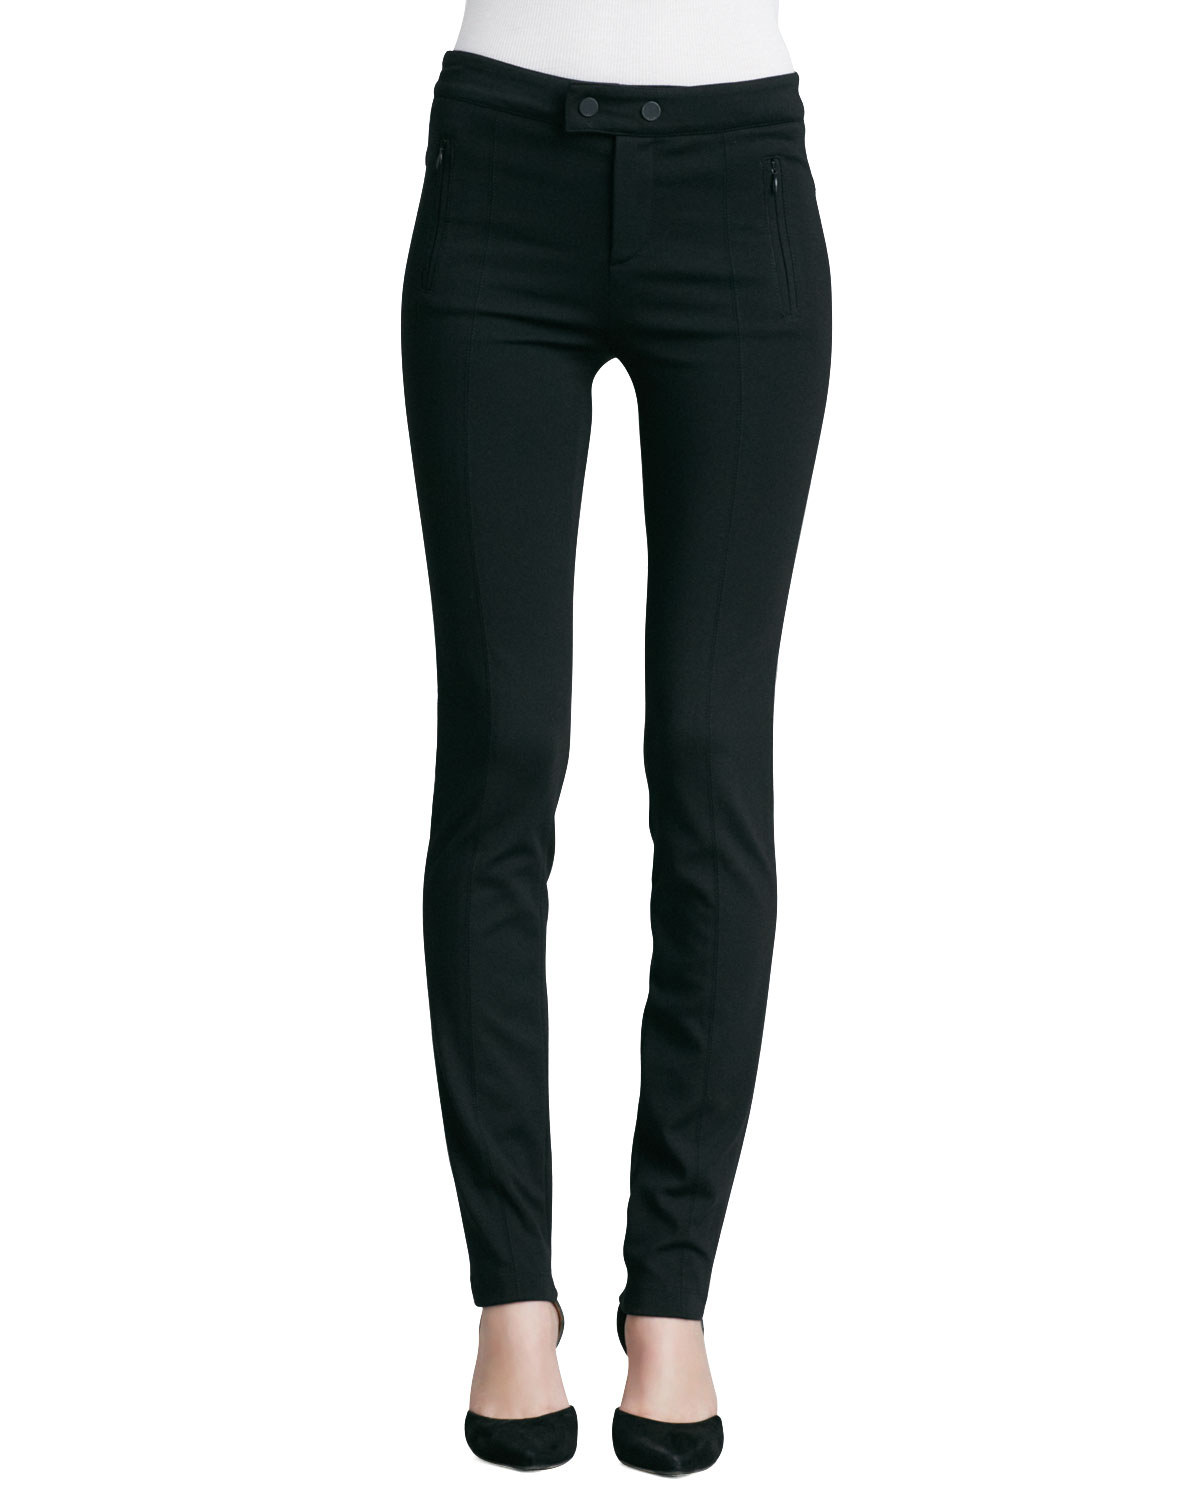 black suit pants featuring wool stretch fabric, multiple pockets and a sleek, ultra slim tailored fit.